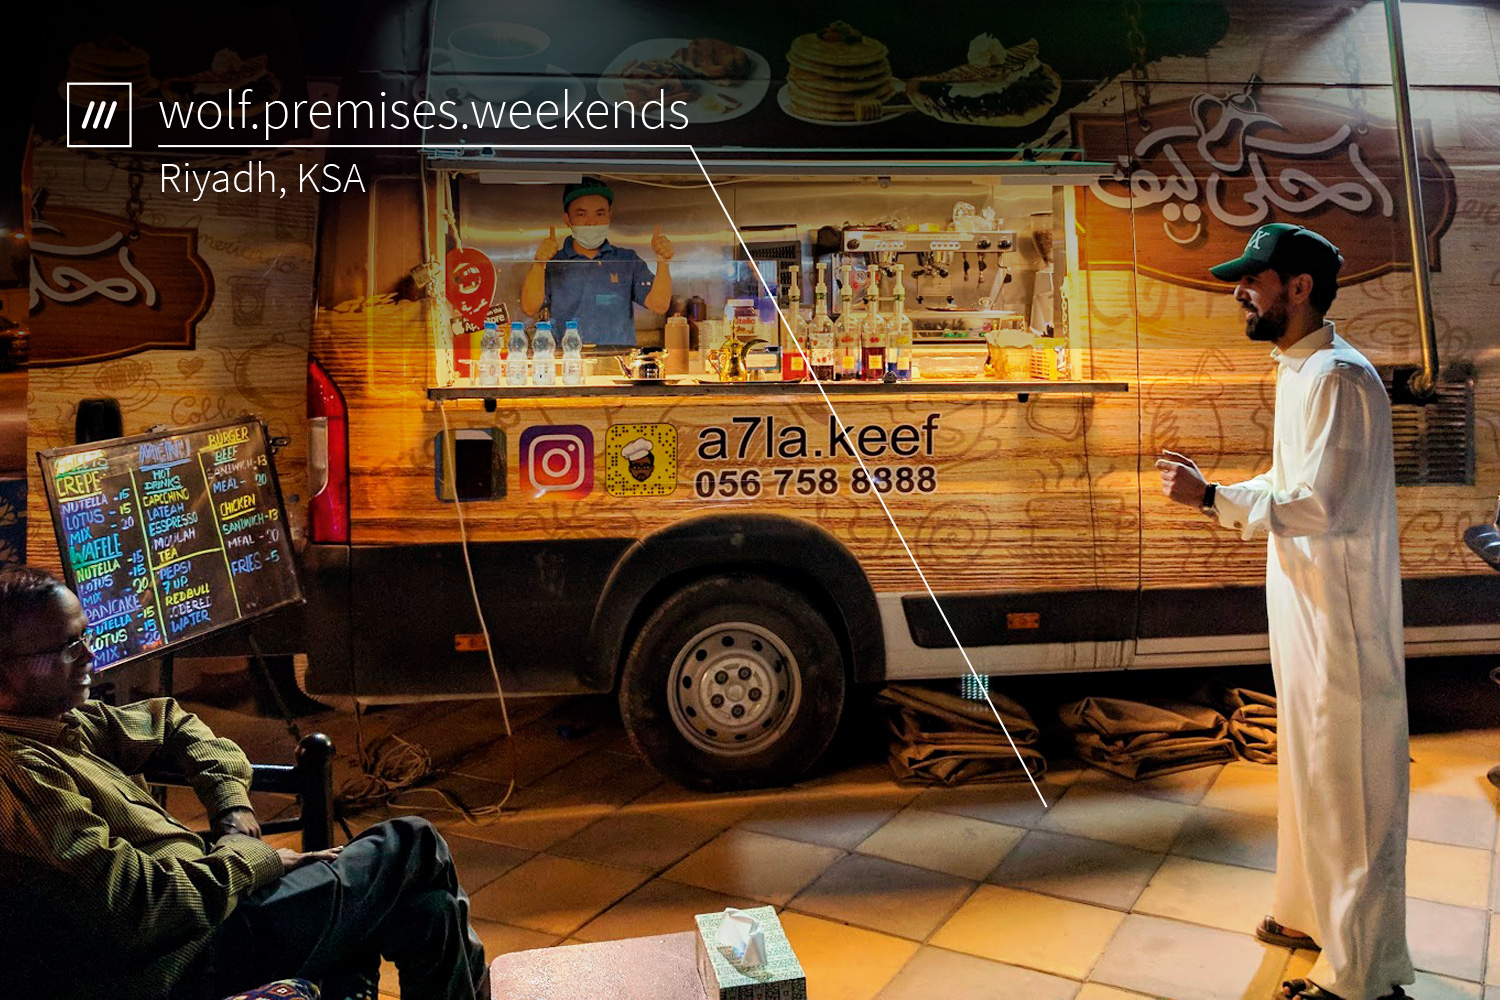 food vendor truck at 3 word address wolf.premises.weekends